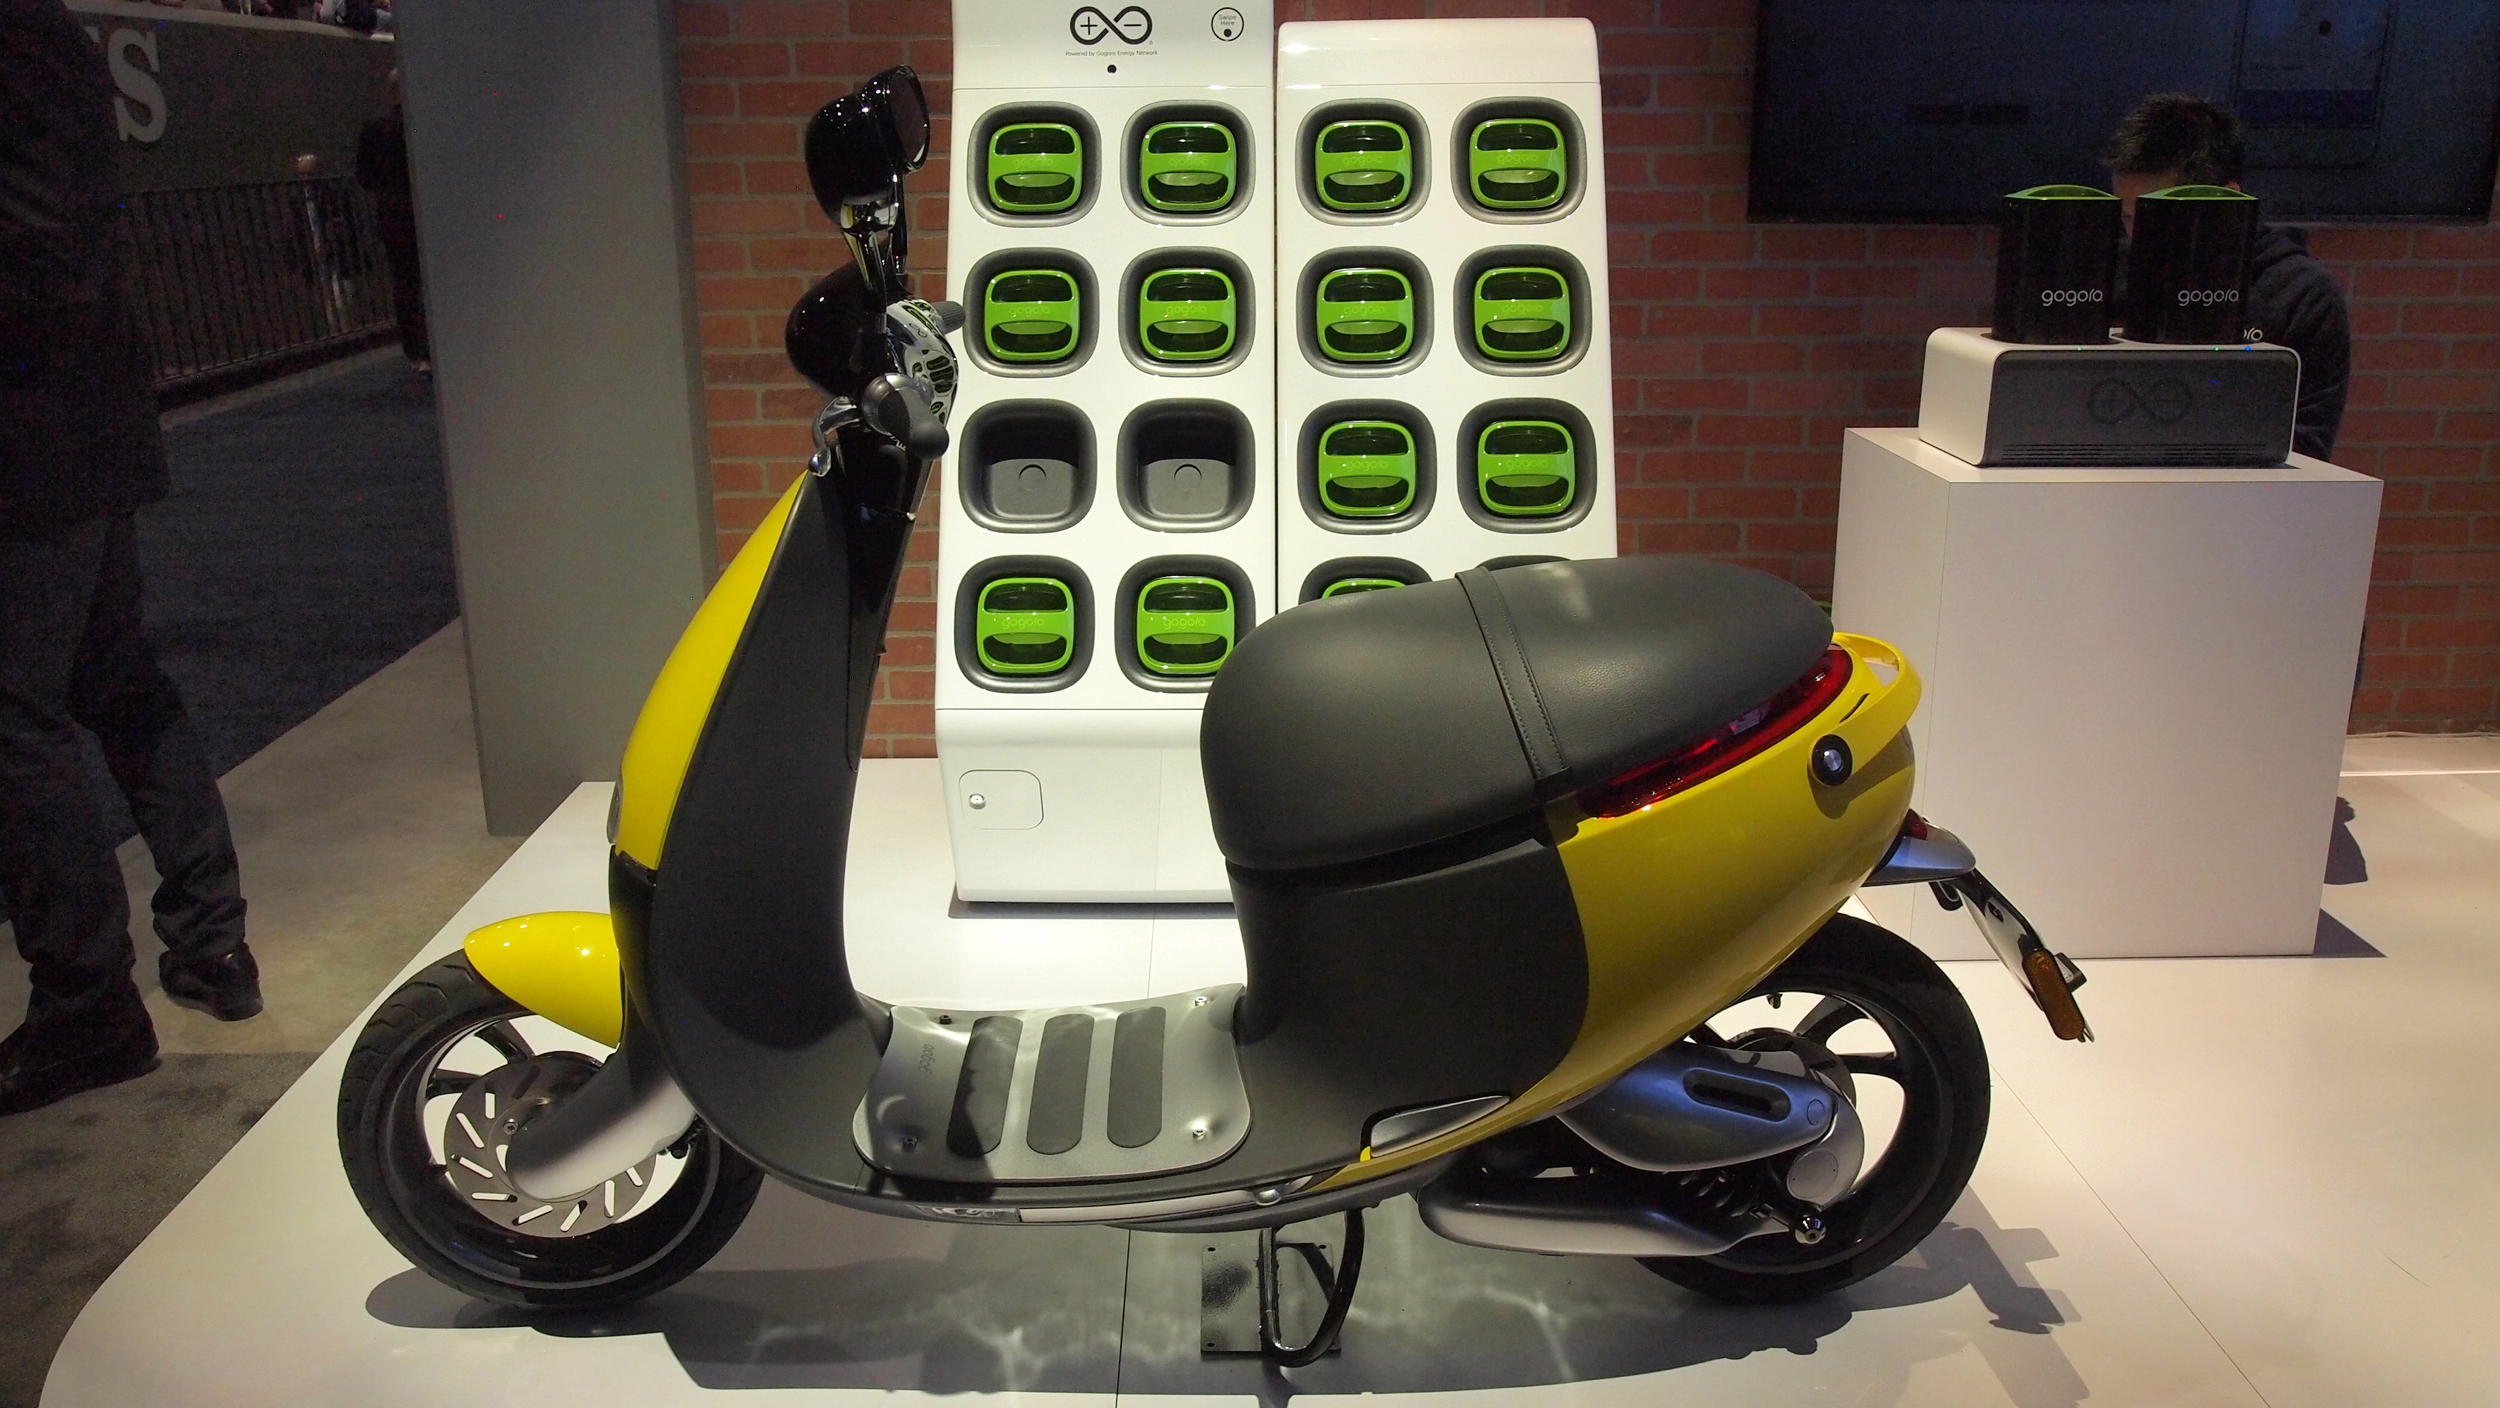 Smartscooter Plus Uses The Same Panasonic 18650 Cylindrical Cells As Tesla Model S 1